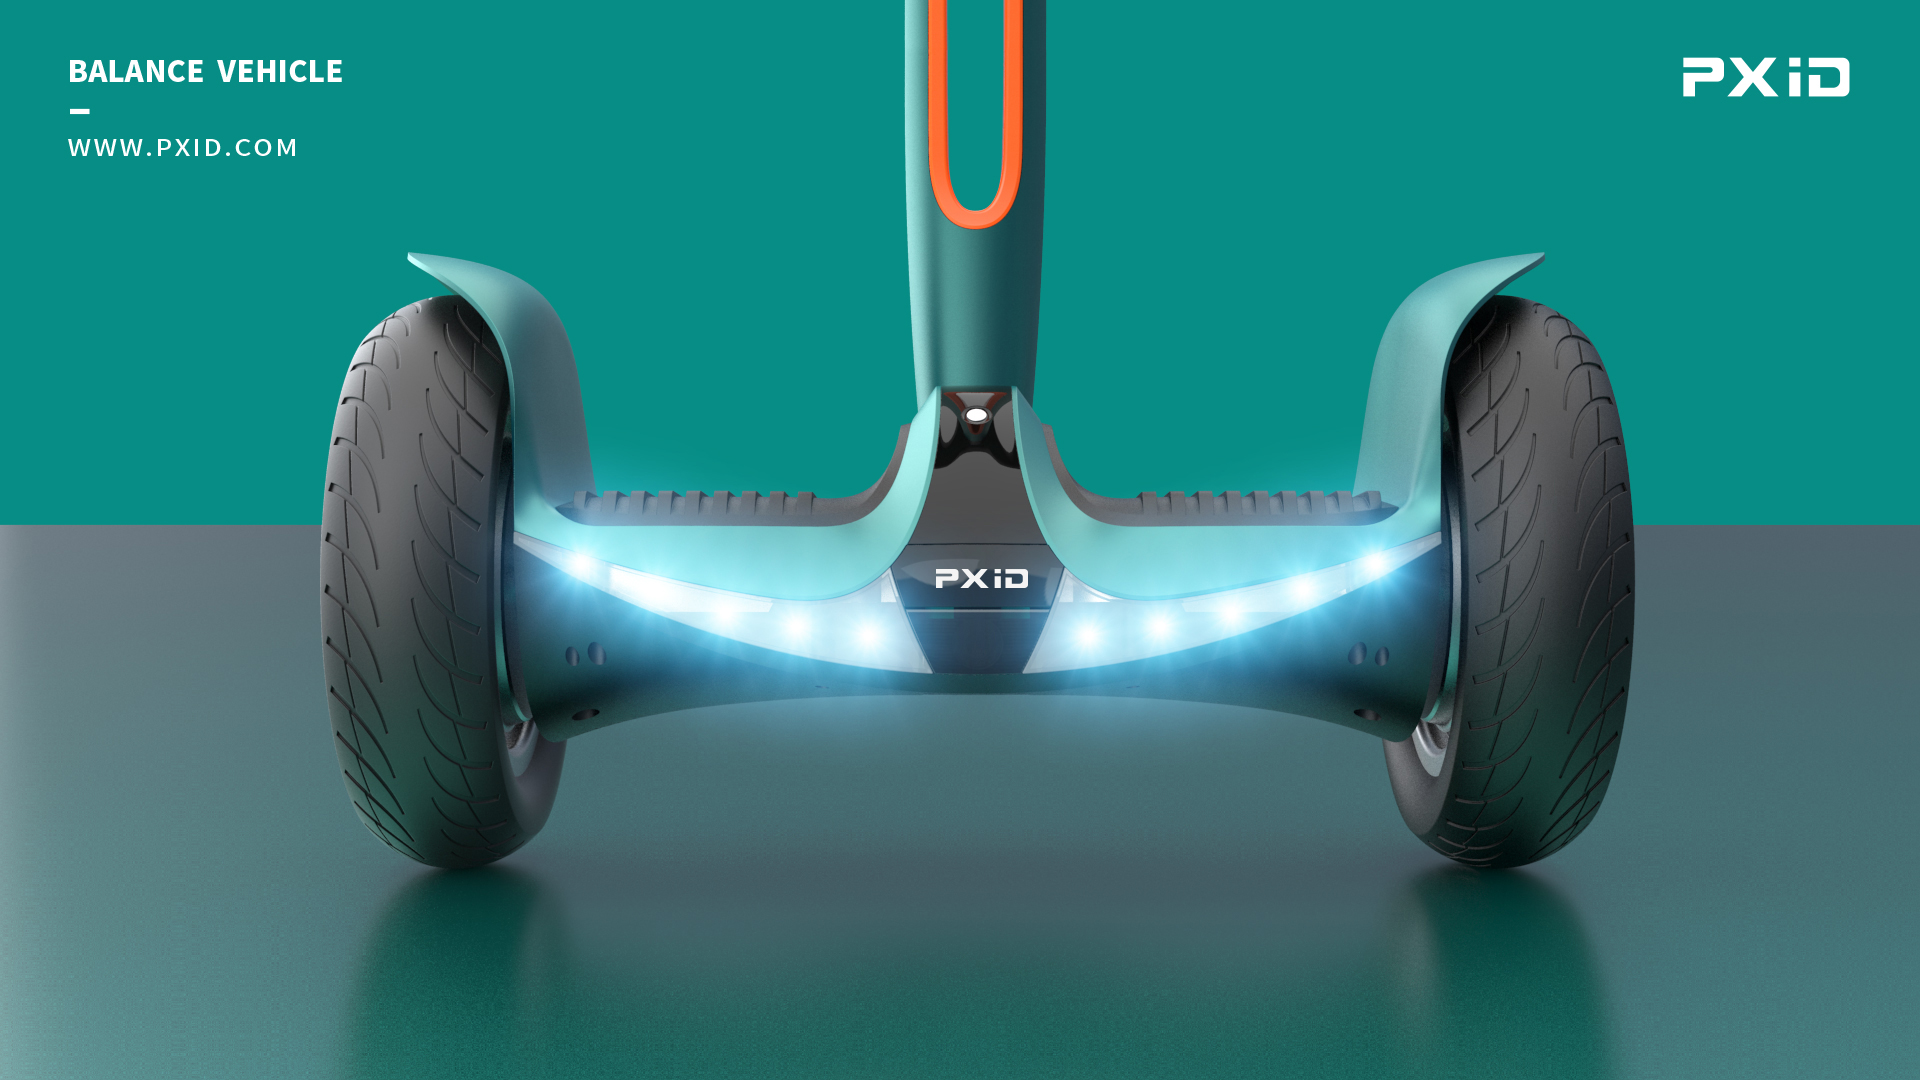 PXID Balance Wheel Scooter Design